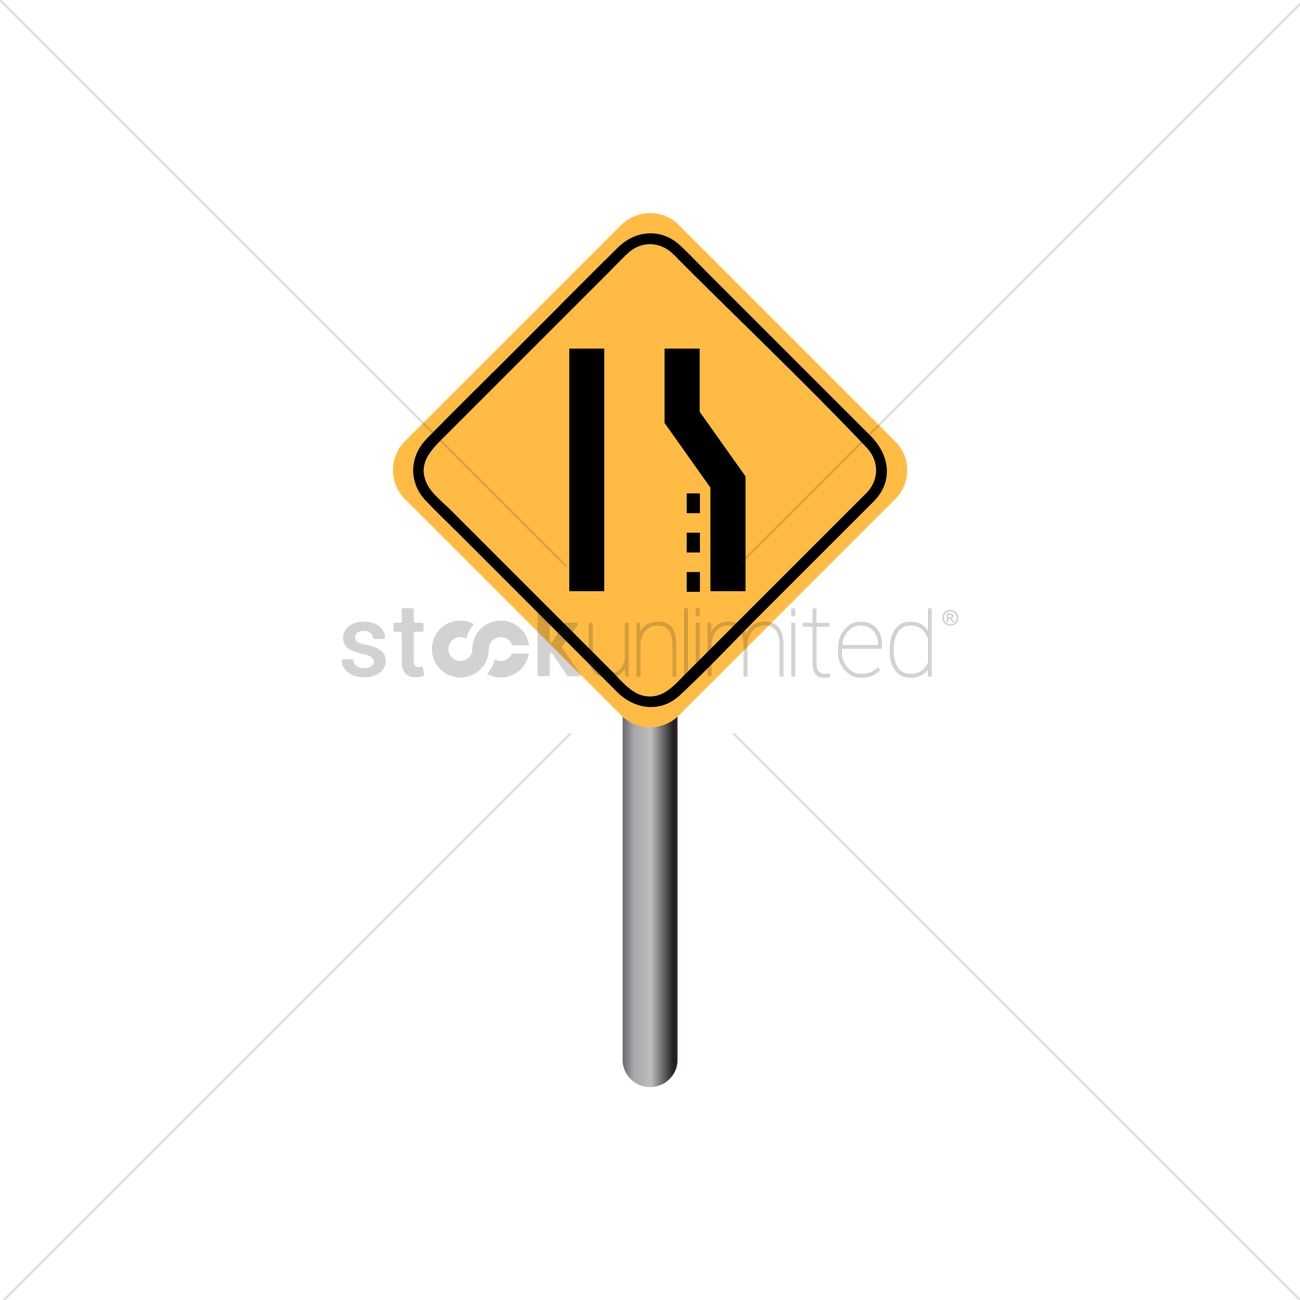 Right lane ends sign vector image 1544878 stockunlimited right lane ends sign vector graphic biocorpaavc